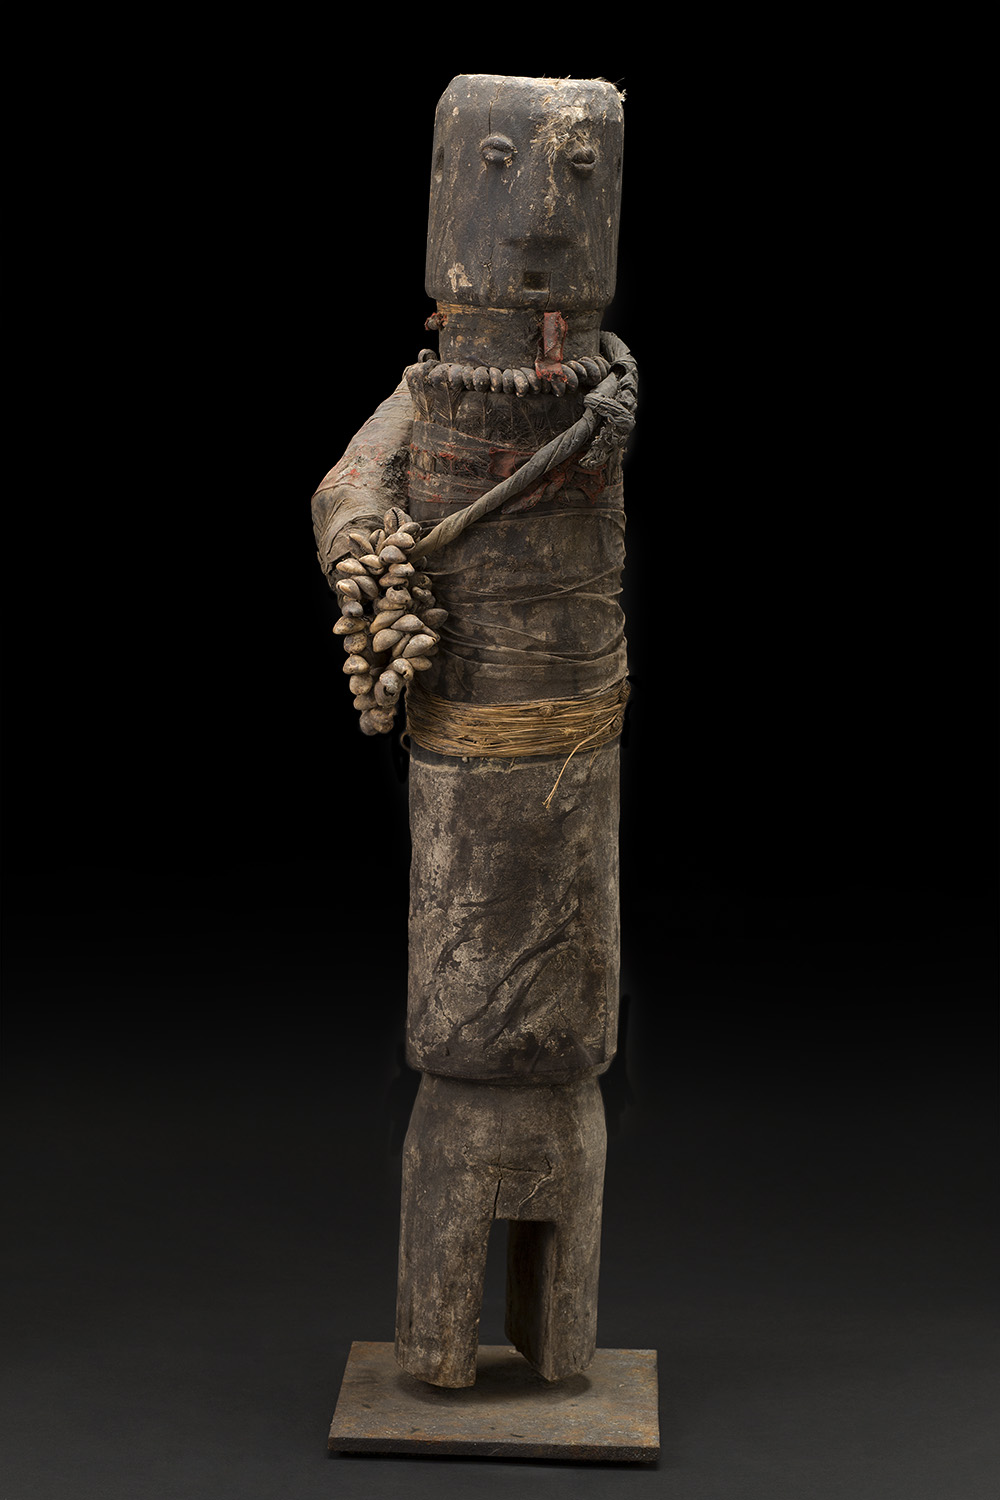 Africa    Bocio - Ewe/Adan People - Togo  , c. 1970-1980 Wood, fabric, feathers, pigment, shells, grass, and other natural materials 35.5 x 8.5 x 6.5 inches 90.2 x 21.6 x 16.5 cm Af 293